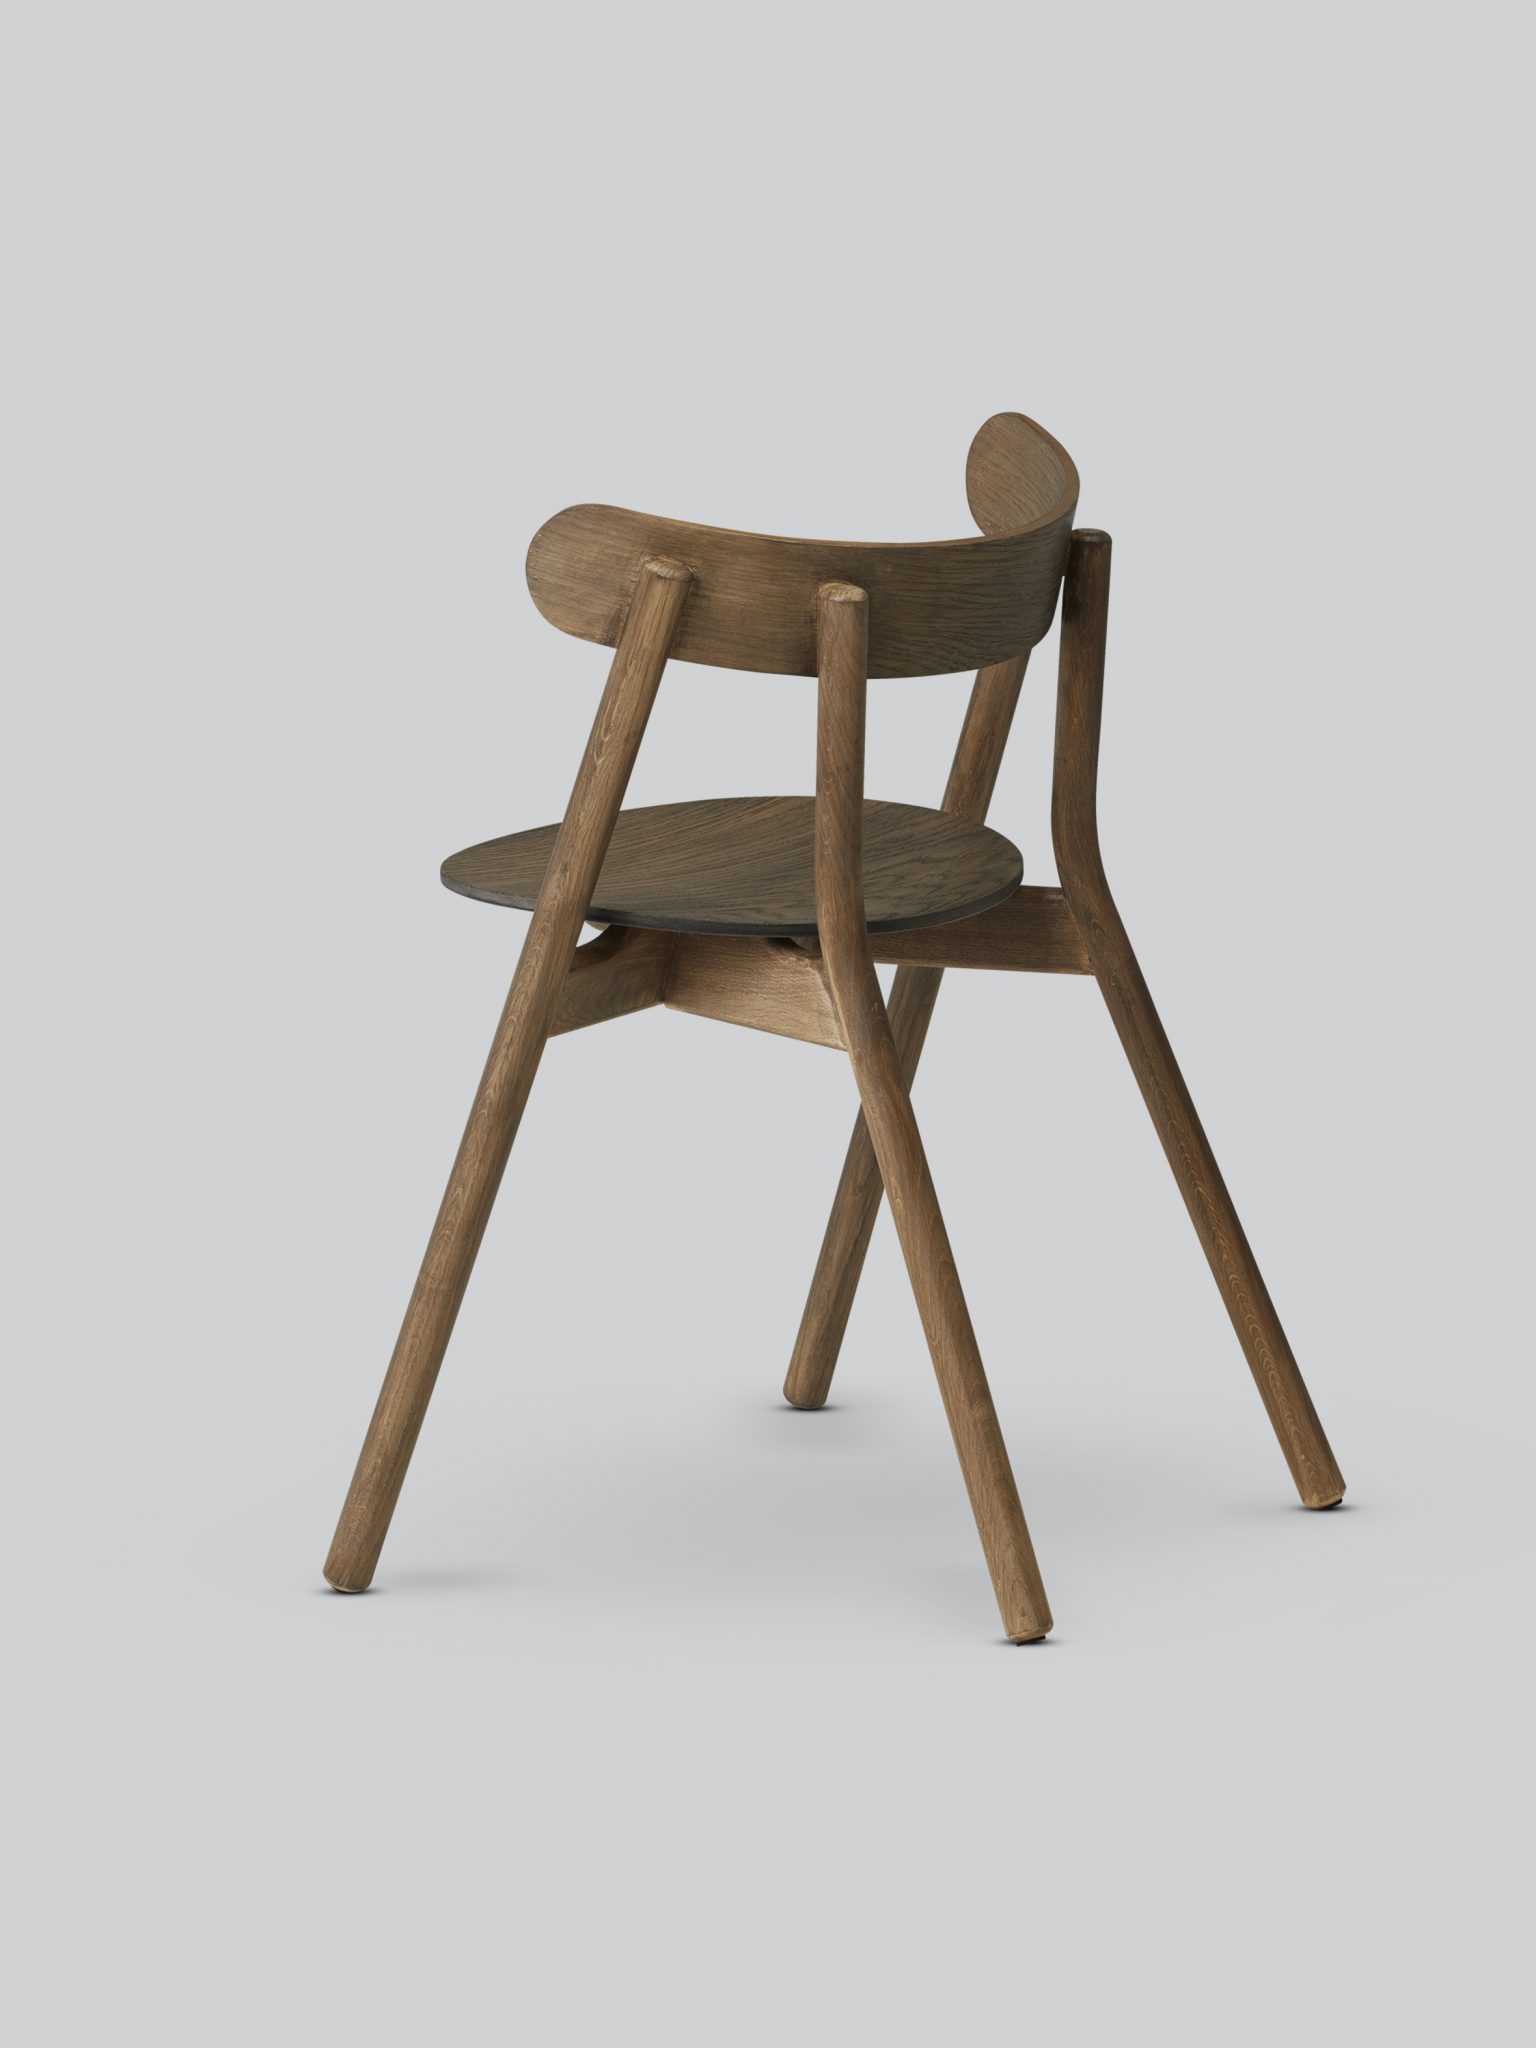 chair design wooden chair oaki stoel design stine aas by northern smukdesign